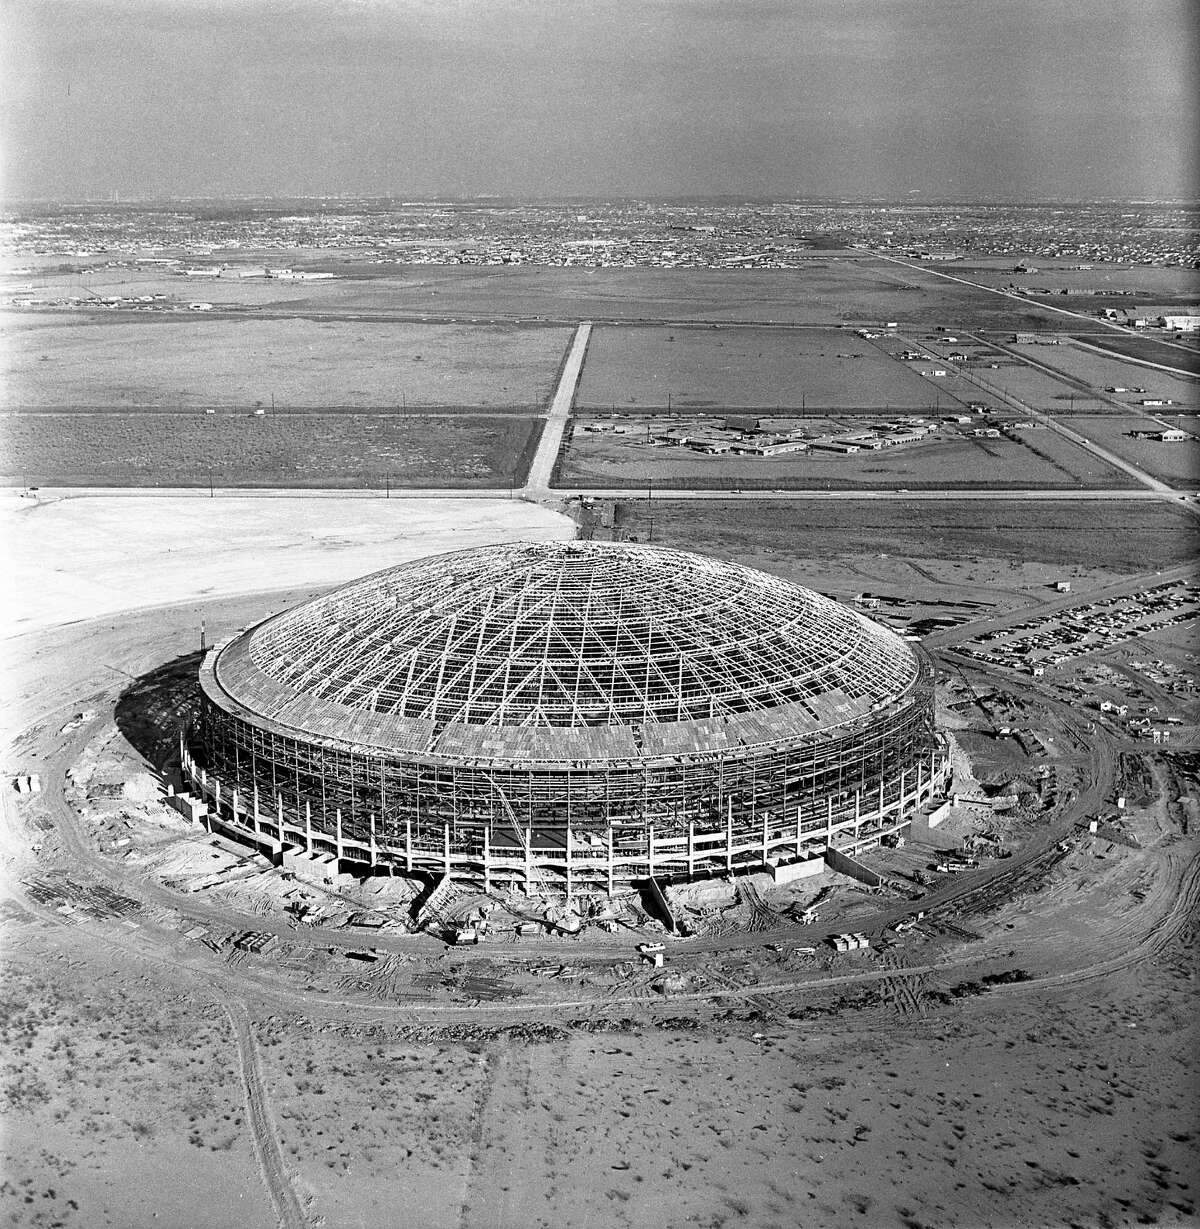 Aerial view of Astrodome construction, looking east.